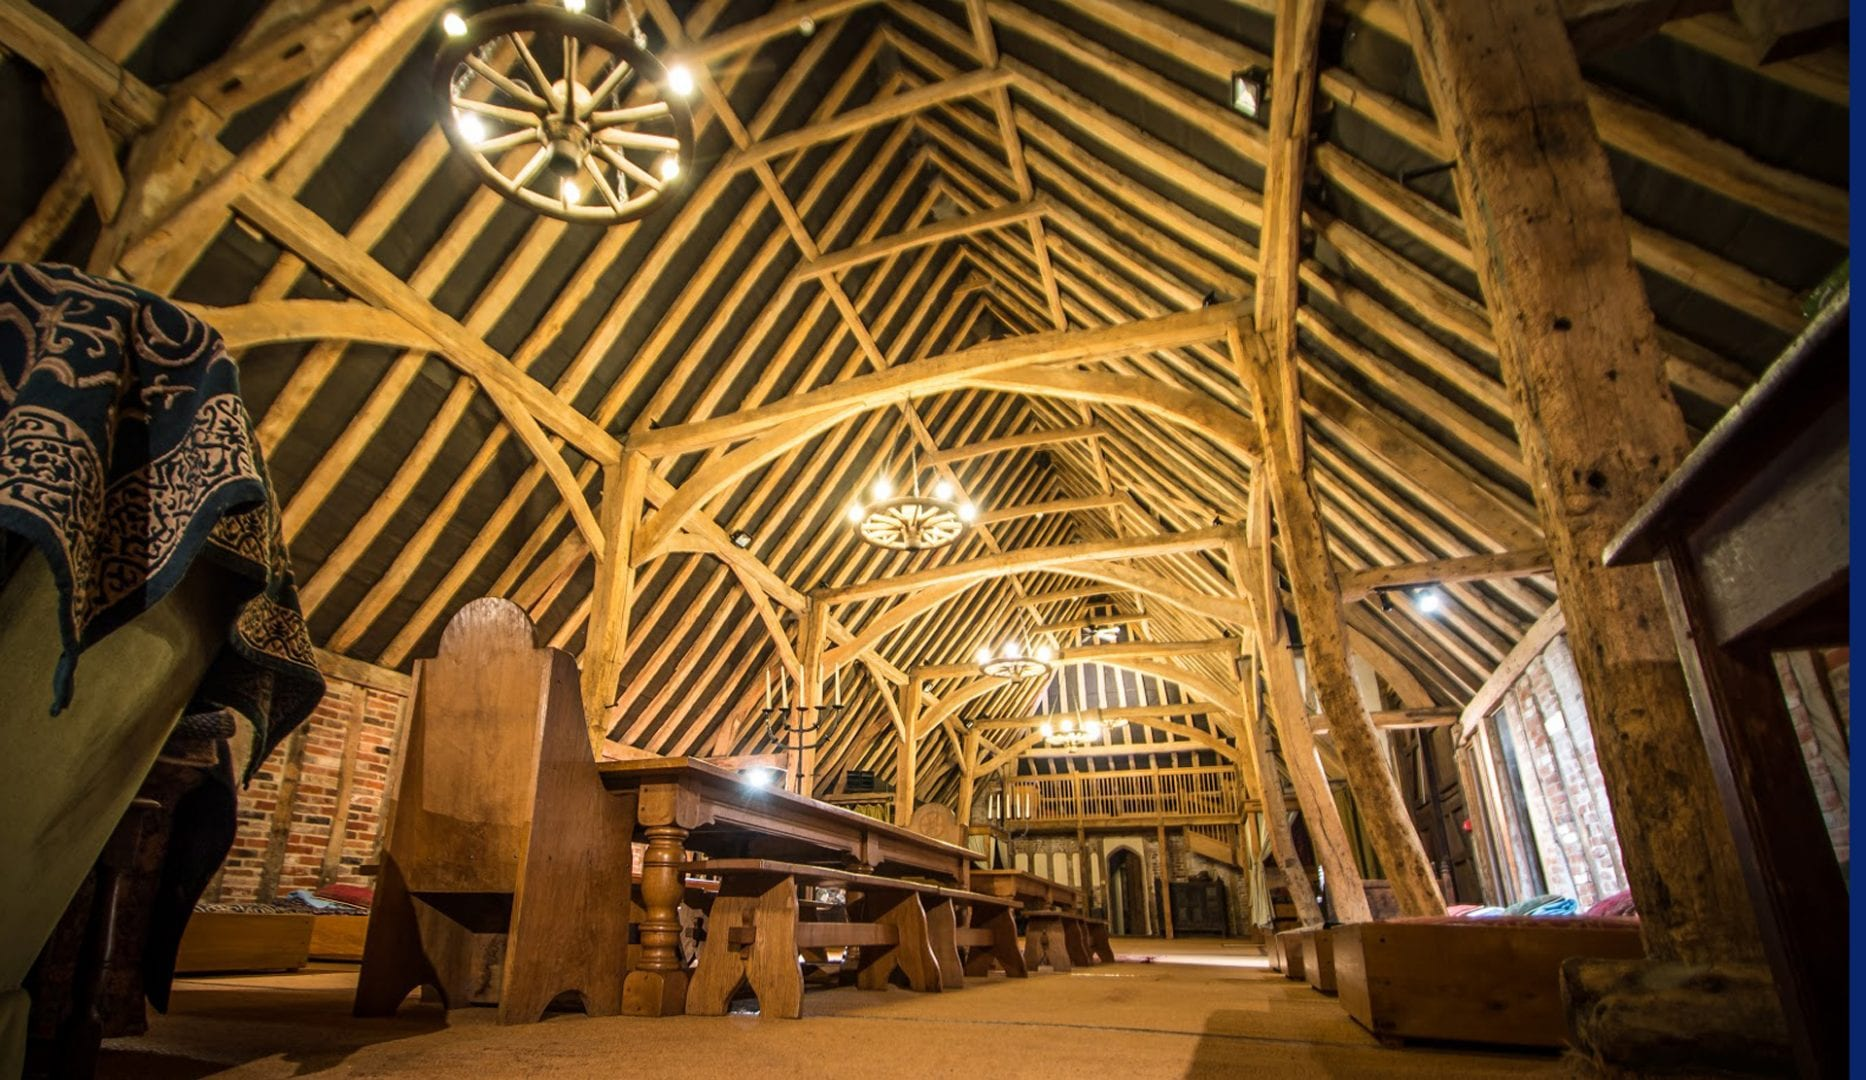 October half term at Tudor barn